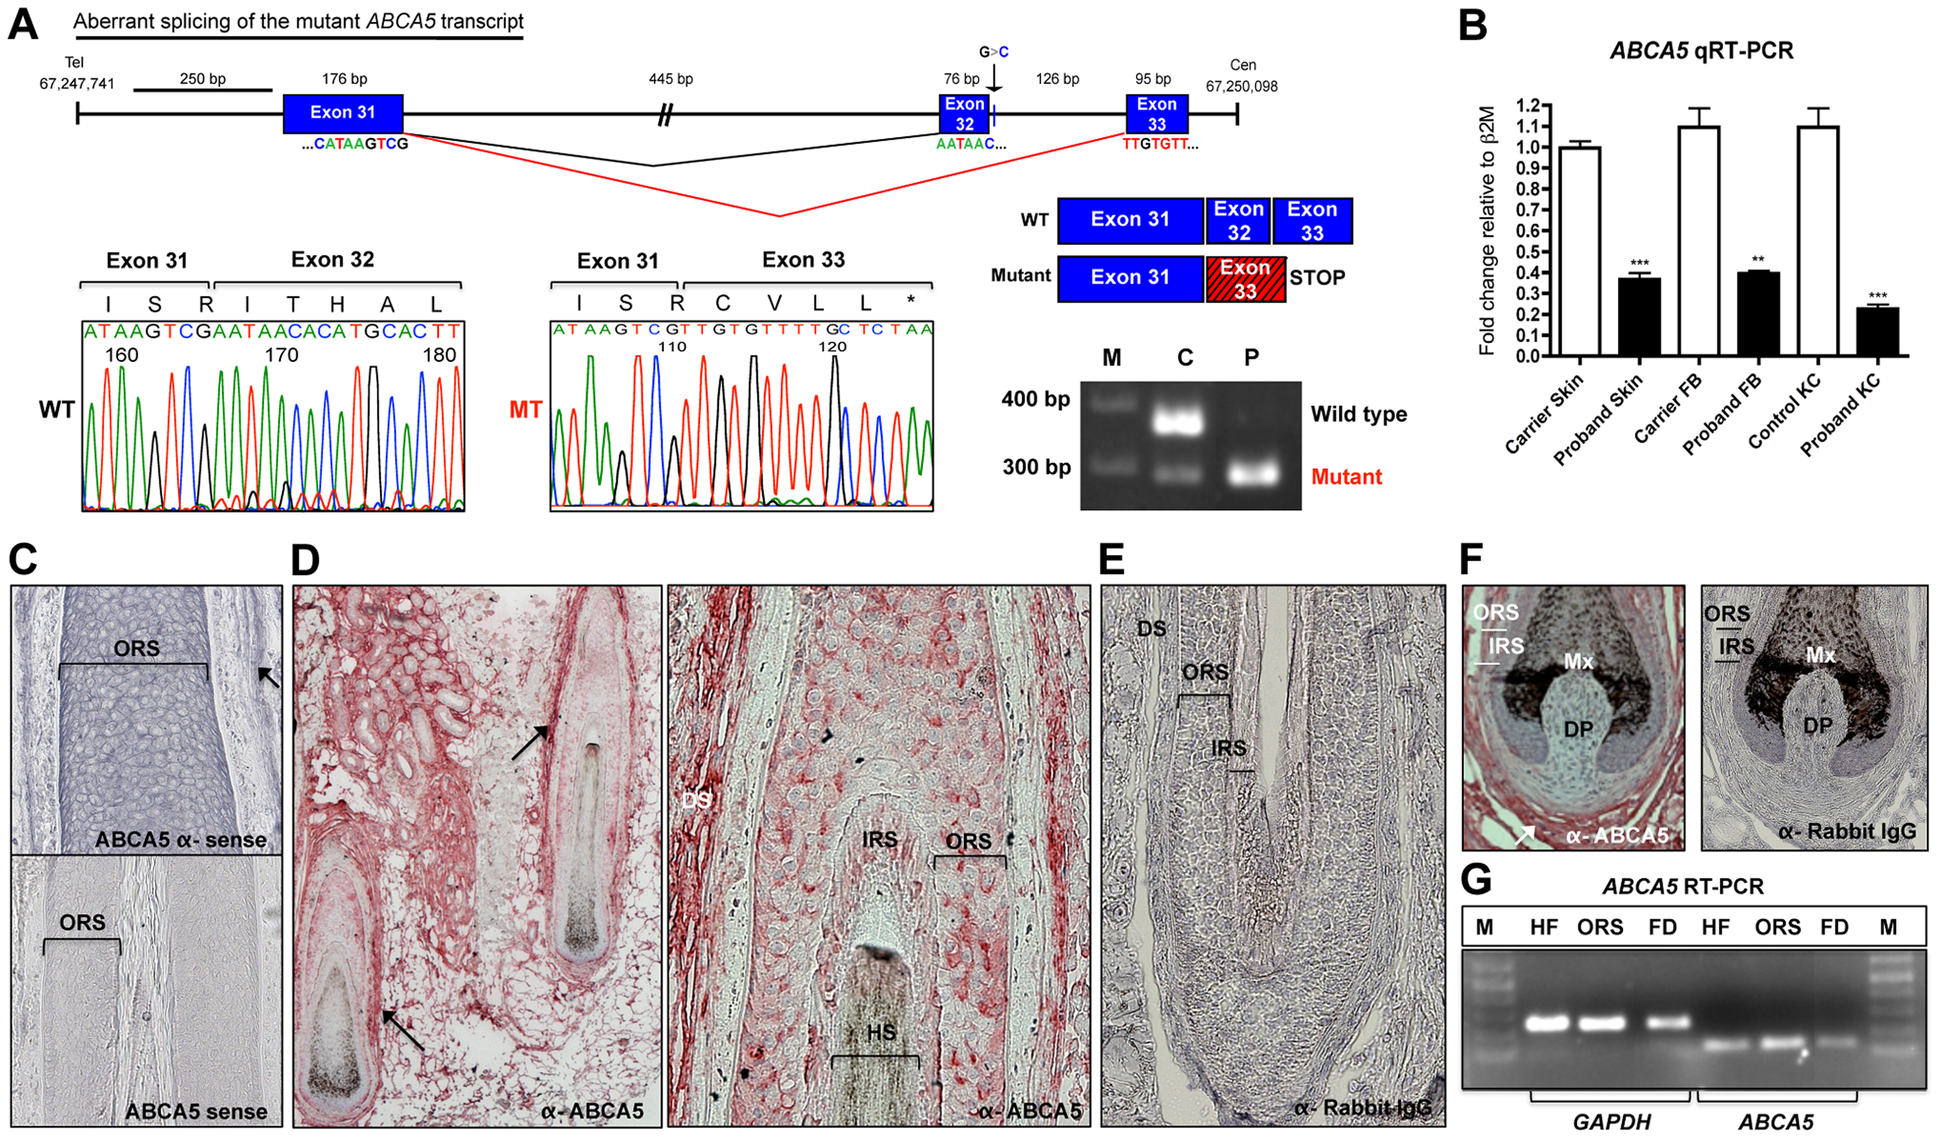 The <i>ABCA5</i> c.4320+1G&gt;C mutation leads to aberrant splicing and nonsense mediated decay, and <i>ABCA5</i> is abundantly expressed in the skin and hair follicle.